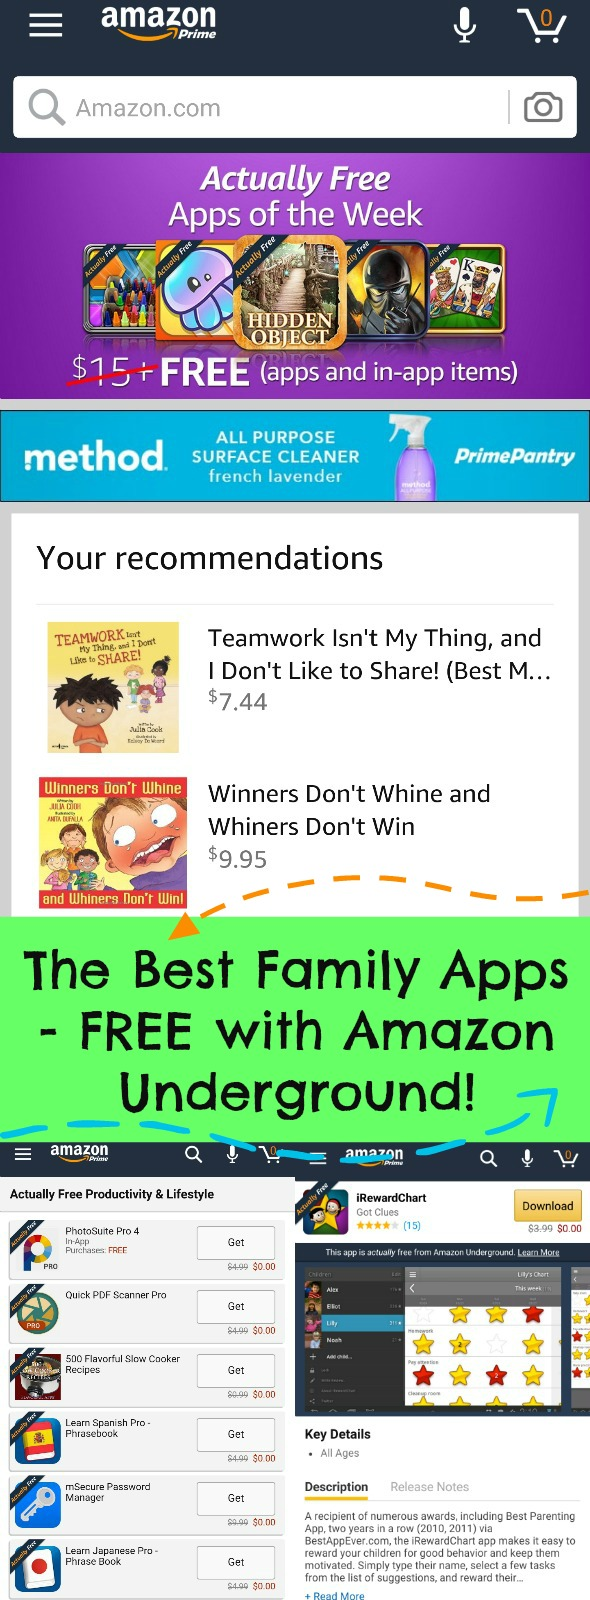 The Best Family Apps - FREE on Amazon Underground! #ad #AmznUnderground